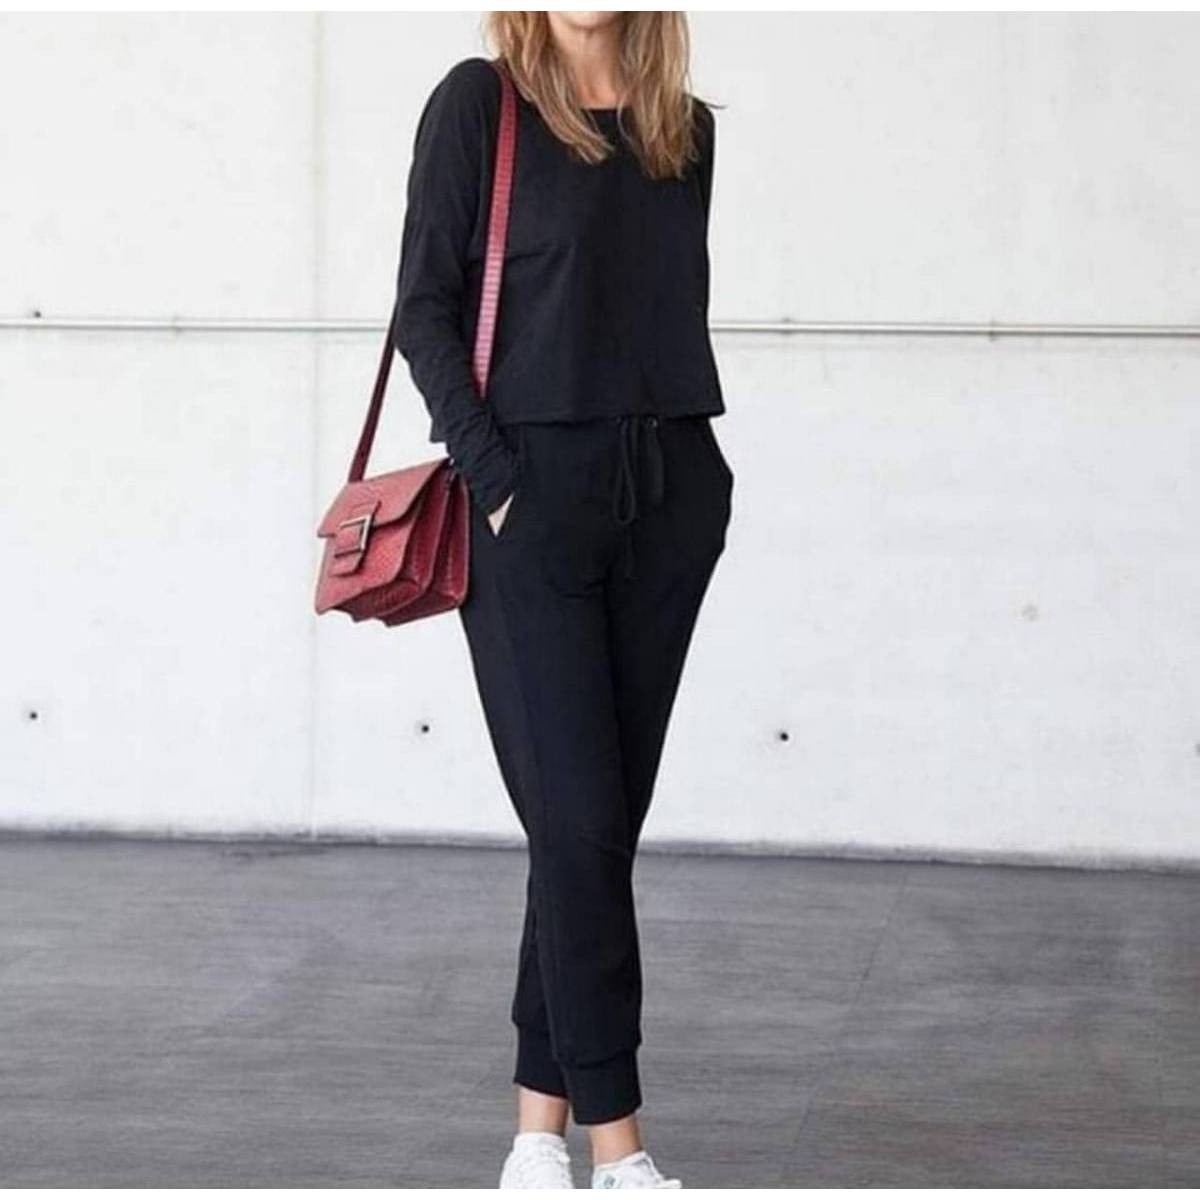 New Summer Collection Black Solid Color Plain Track Suit For Women